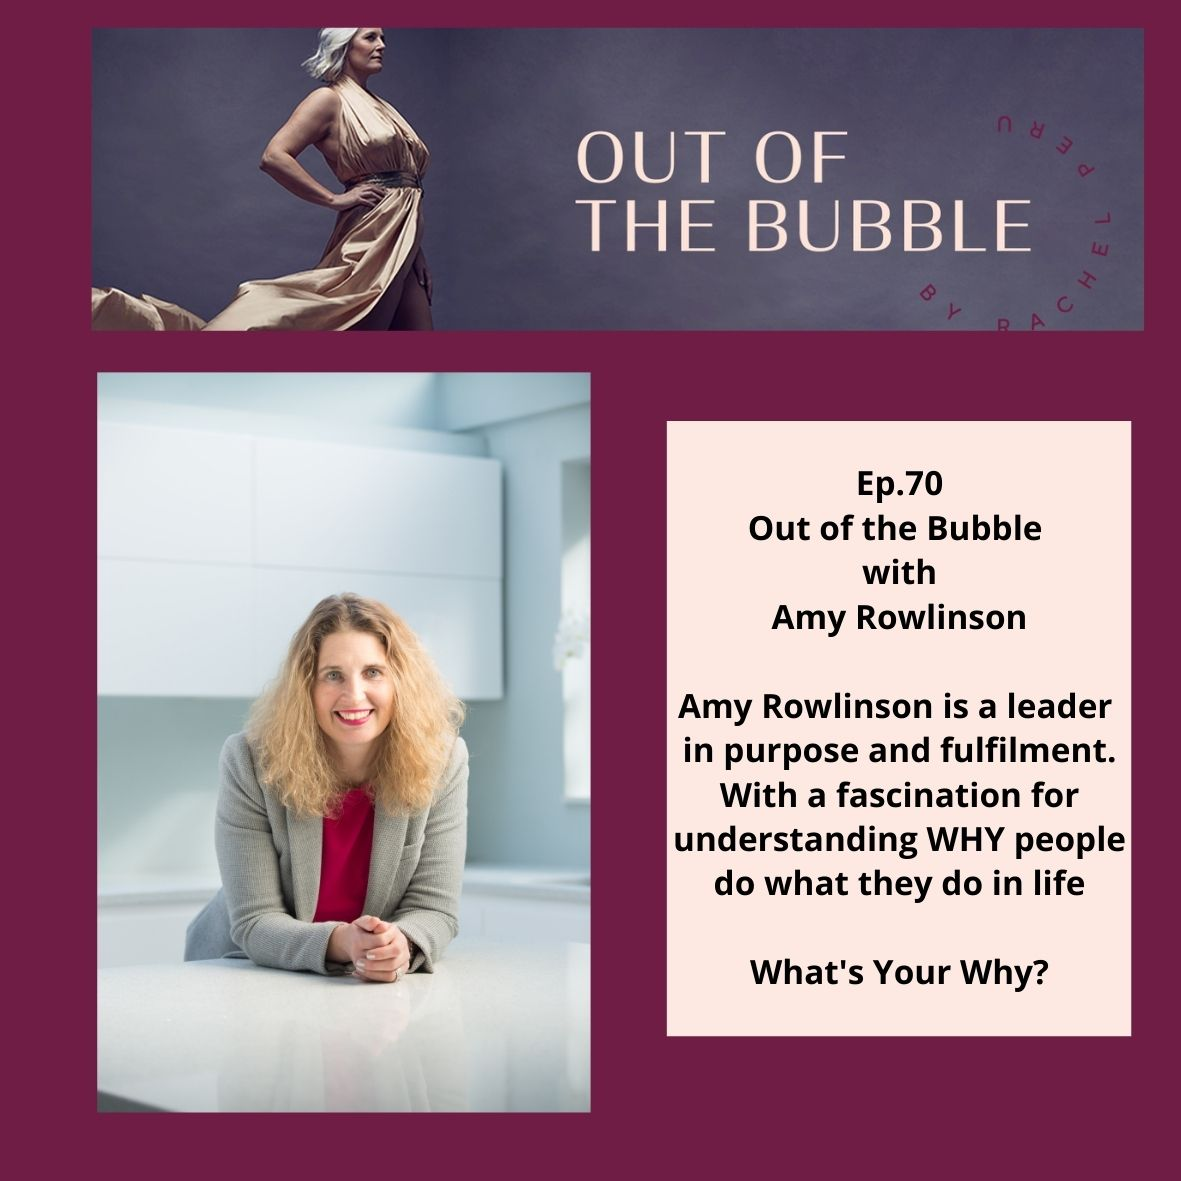 Ep.70 Out of the Bubble with successful coach and globally acclaimed Focus On Why podcast host Amy Rowlinson